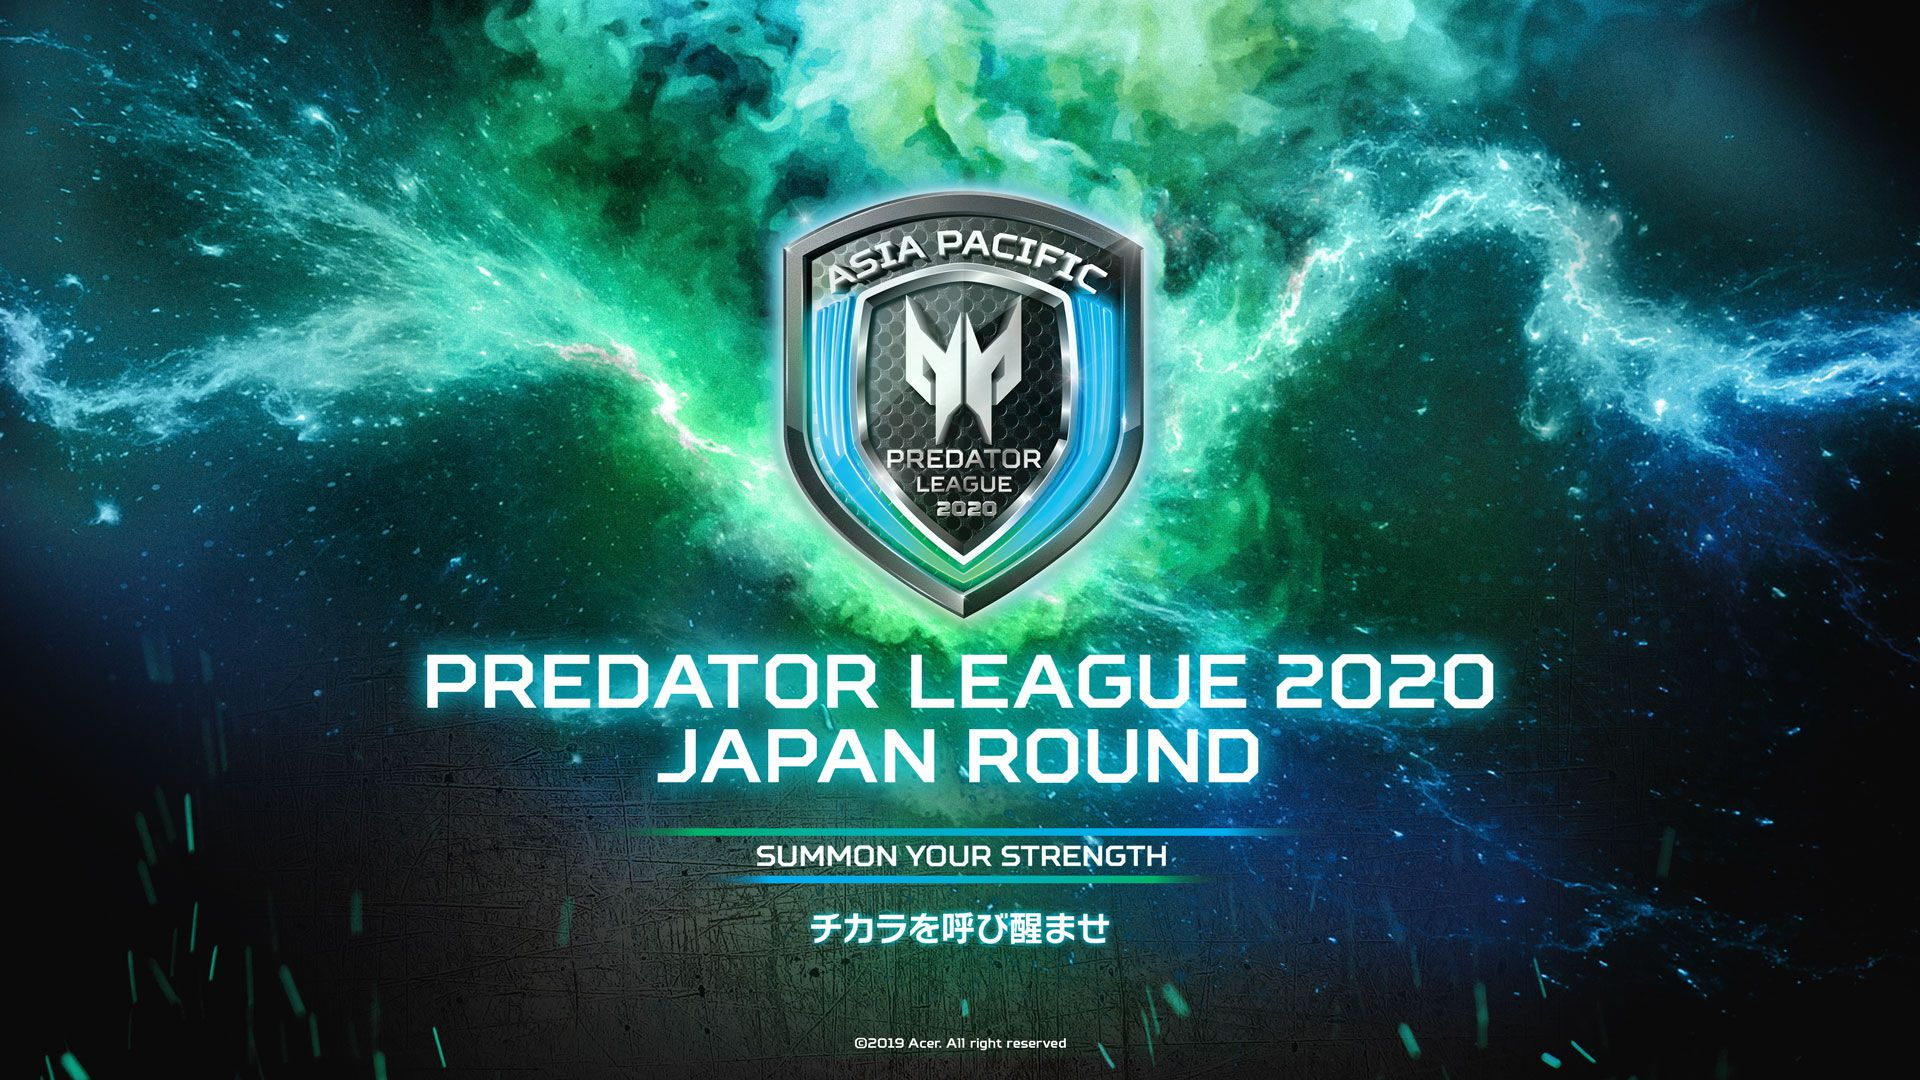 「Predator League 2020 Japan Round